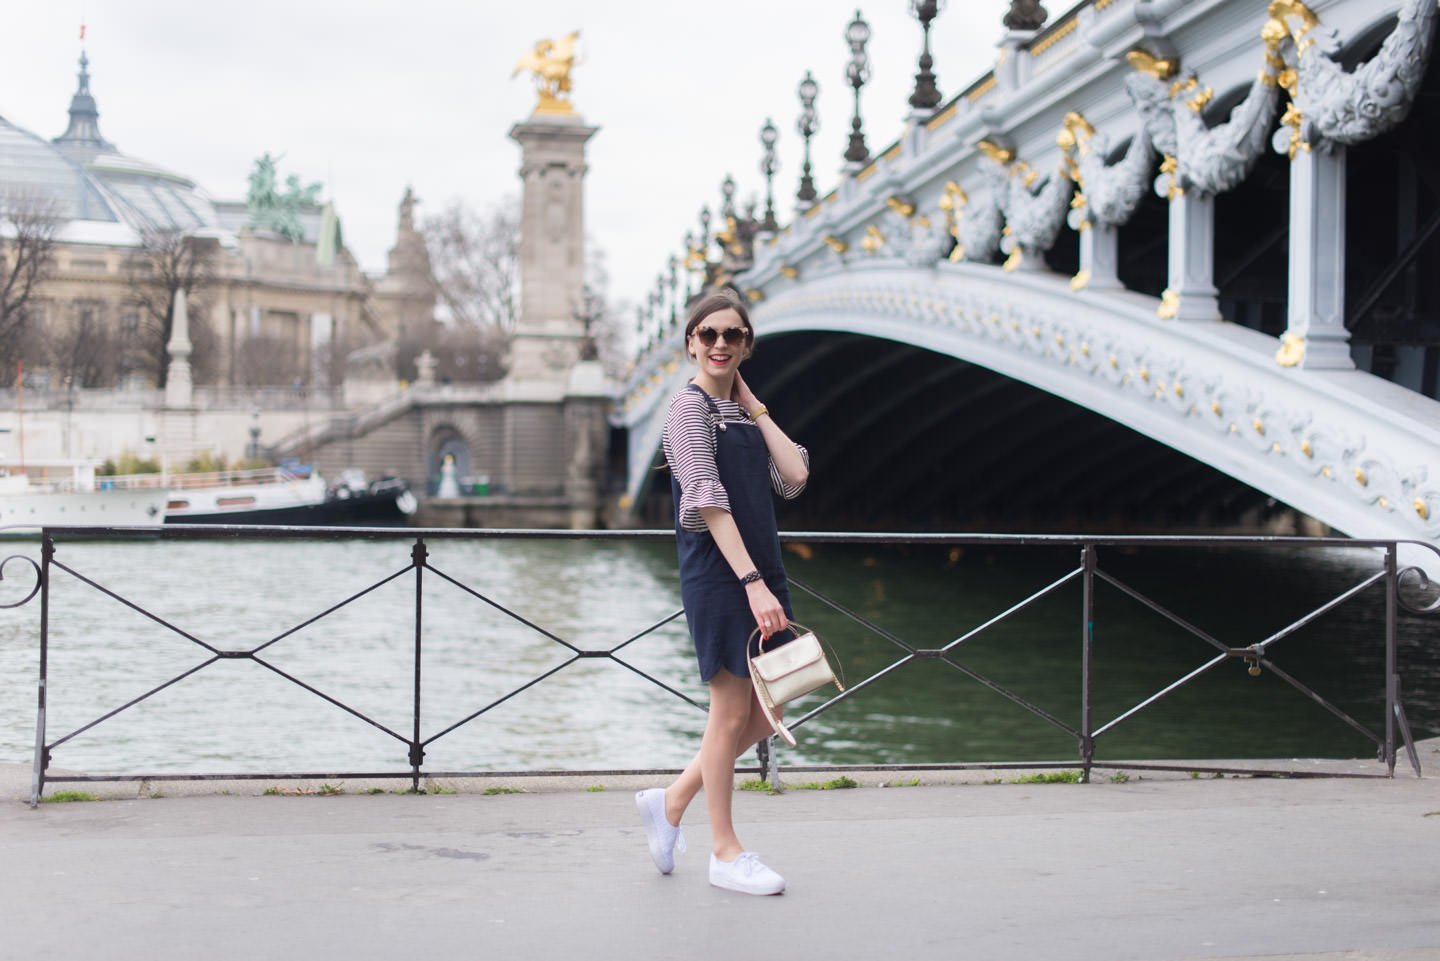 Blog-Mode-And-The-City-Lifestyle-paris-en-une-journee-Pont-Alexandre-III